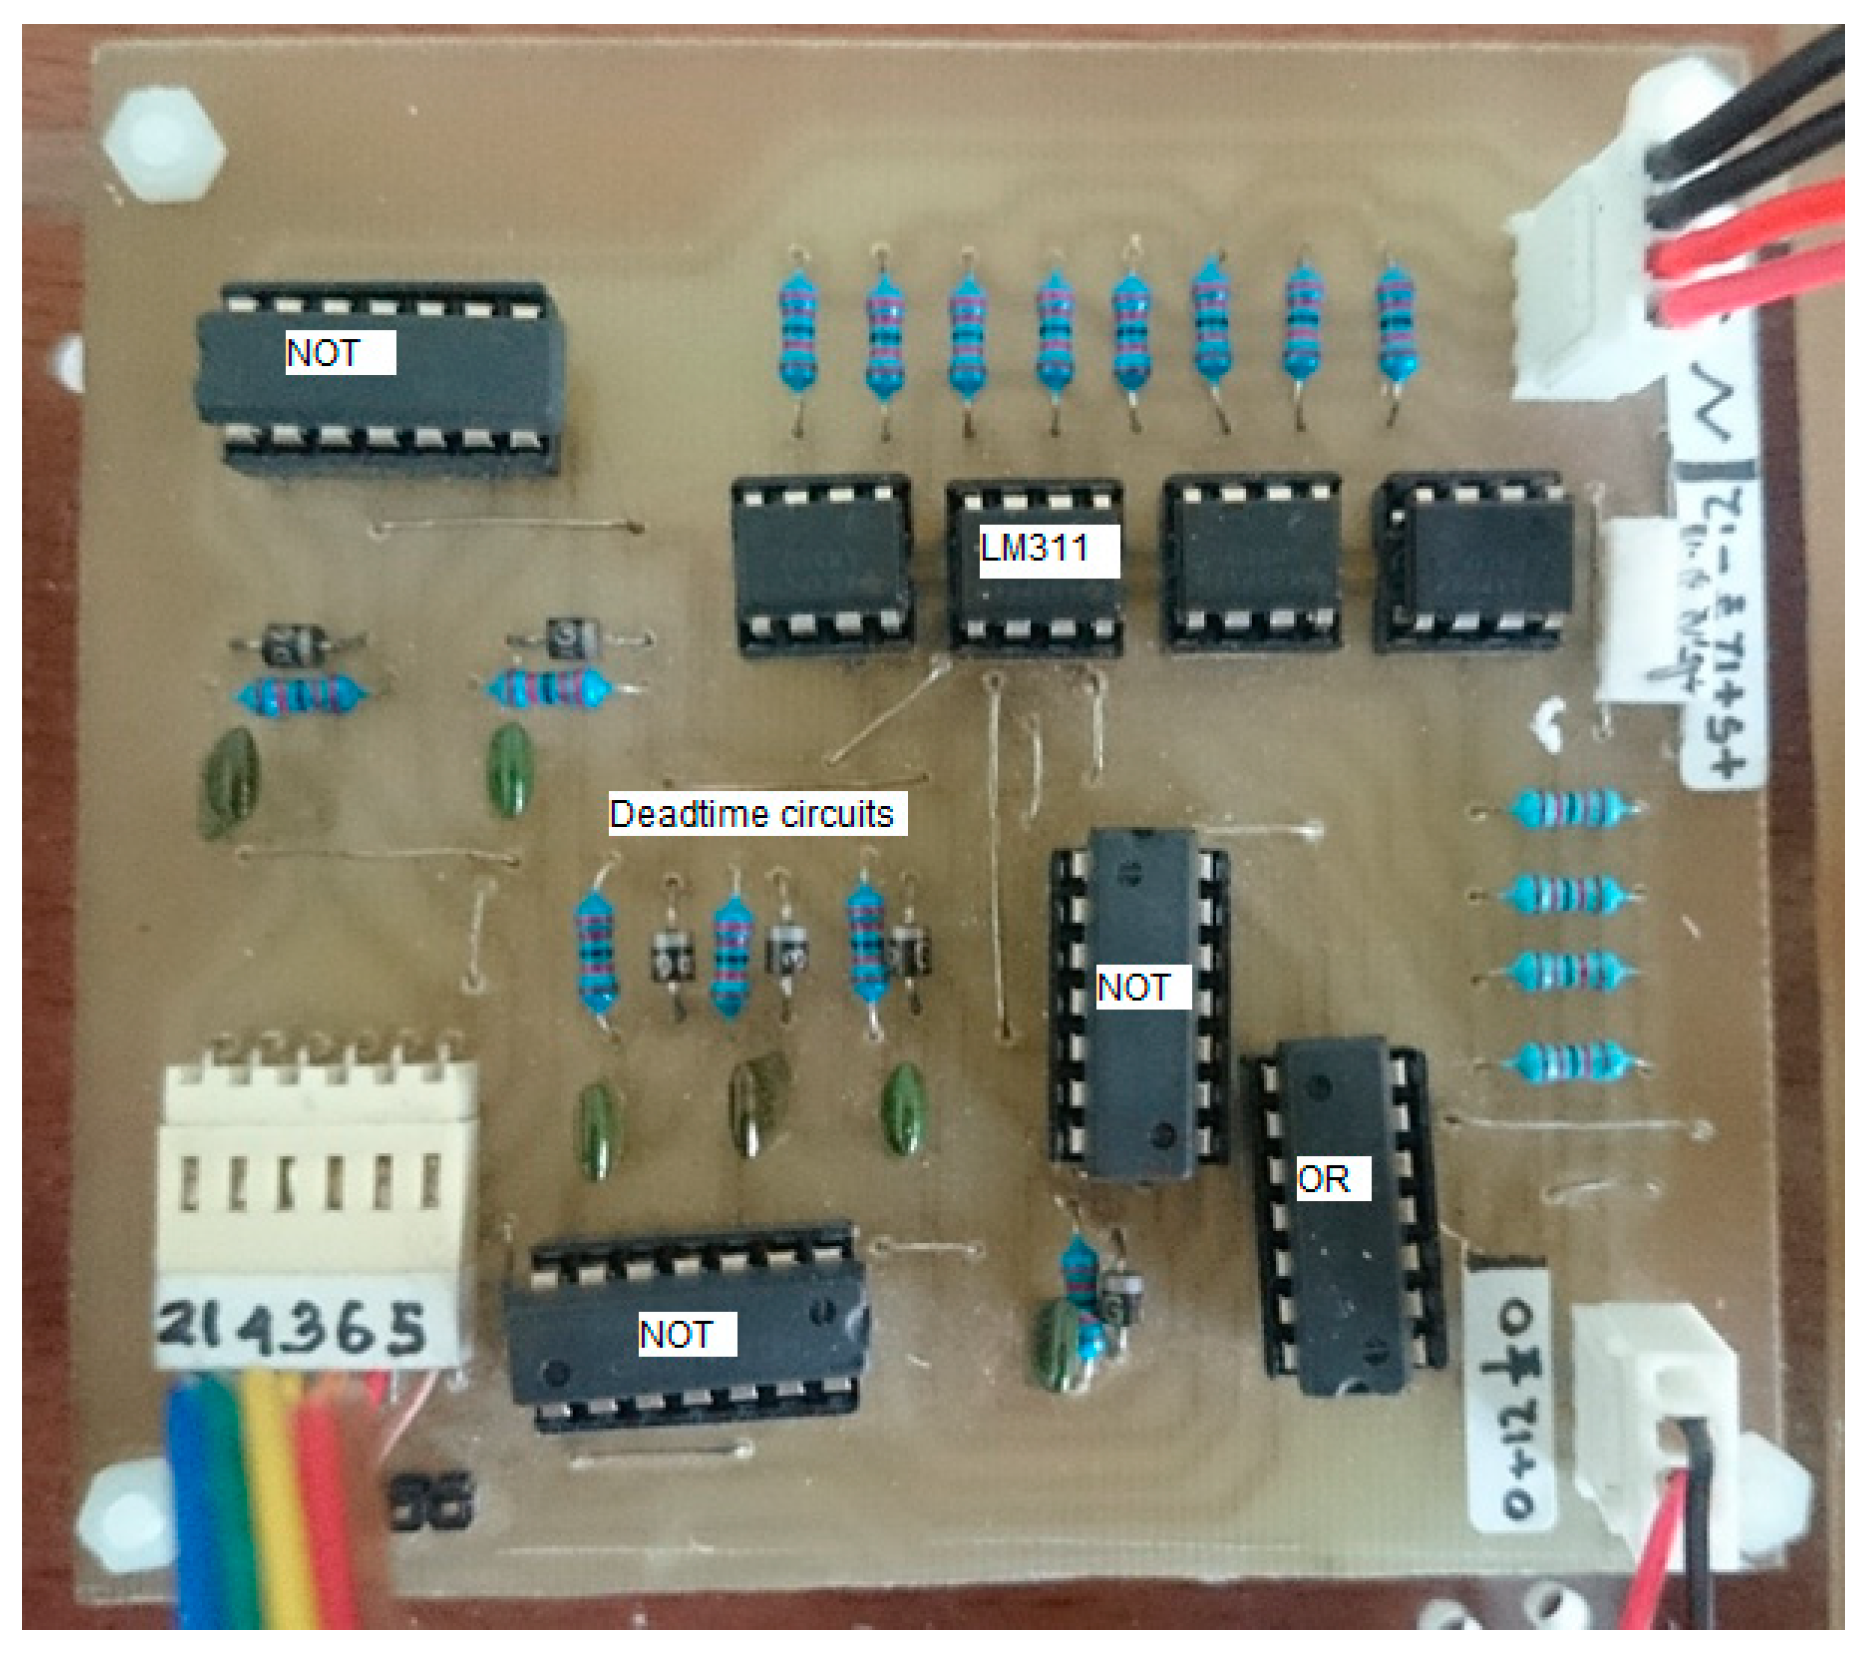 Best 12 Volt Auto Battery Charger Circuit Using Lm311 Latest News